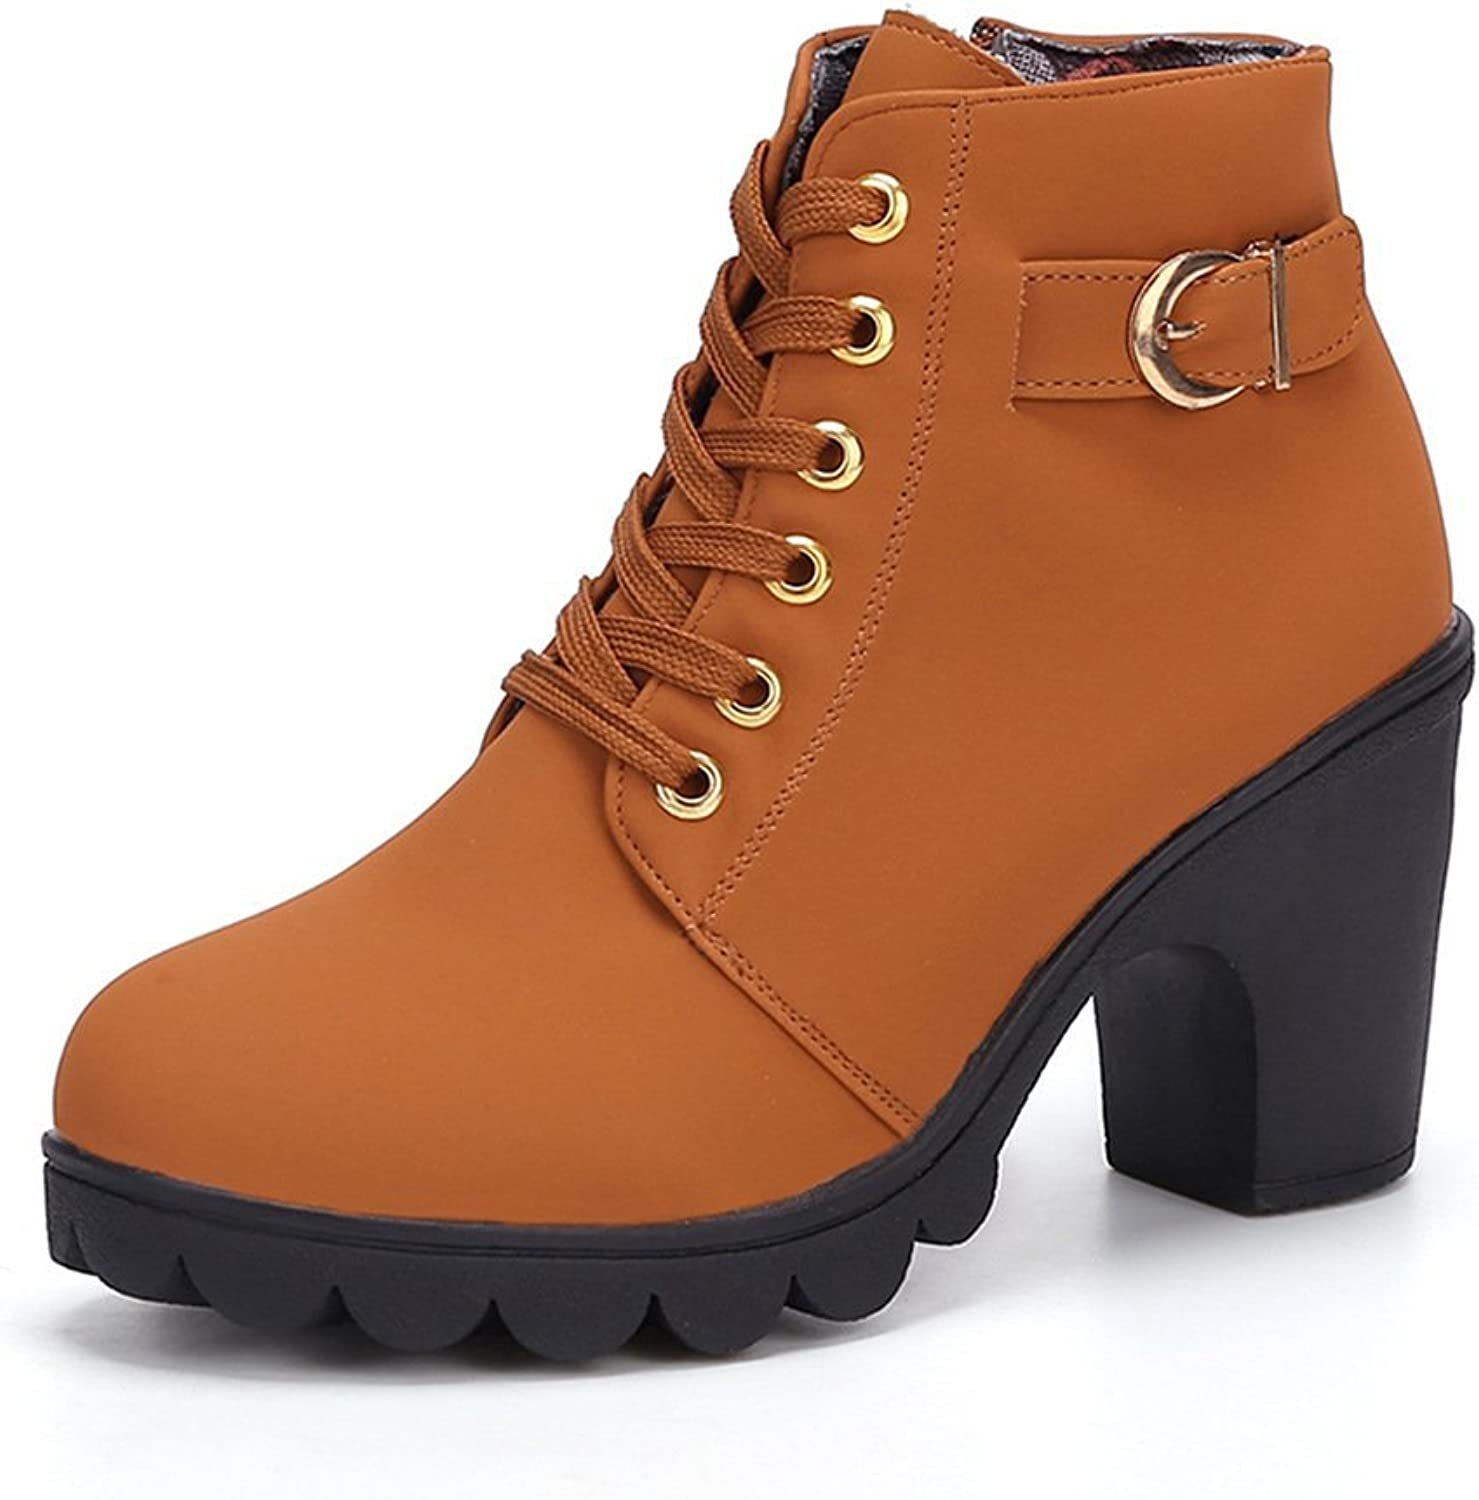 PP Fashion Women's Formal Lace-up High Top Chunky PU Queen Ankle Boots Casual shoes with Lug Sole